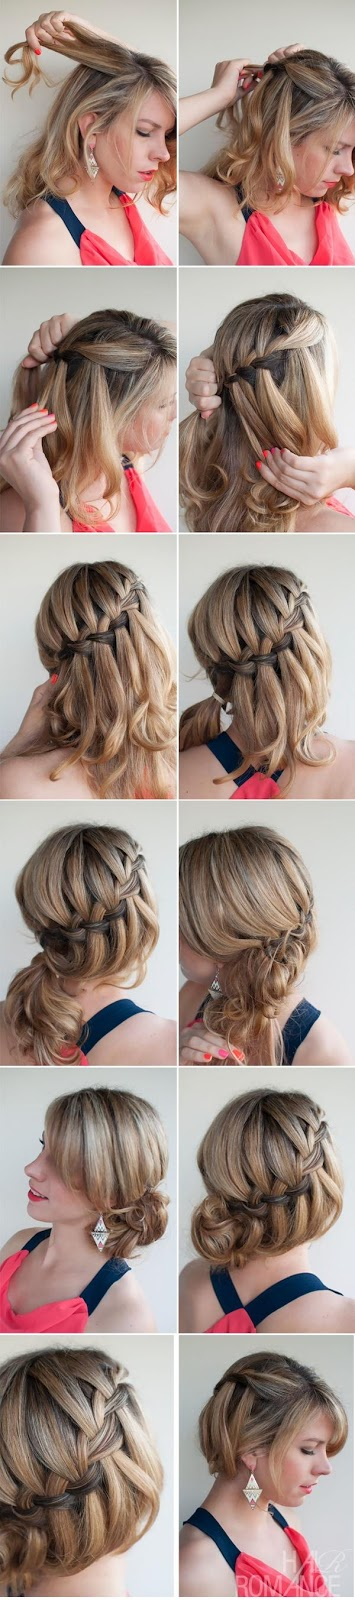 Fantastic 11 Interesting And Useful Hair Tutorials For Every Day Short Hairstyles Gunalazisus